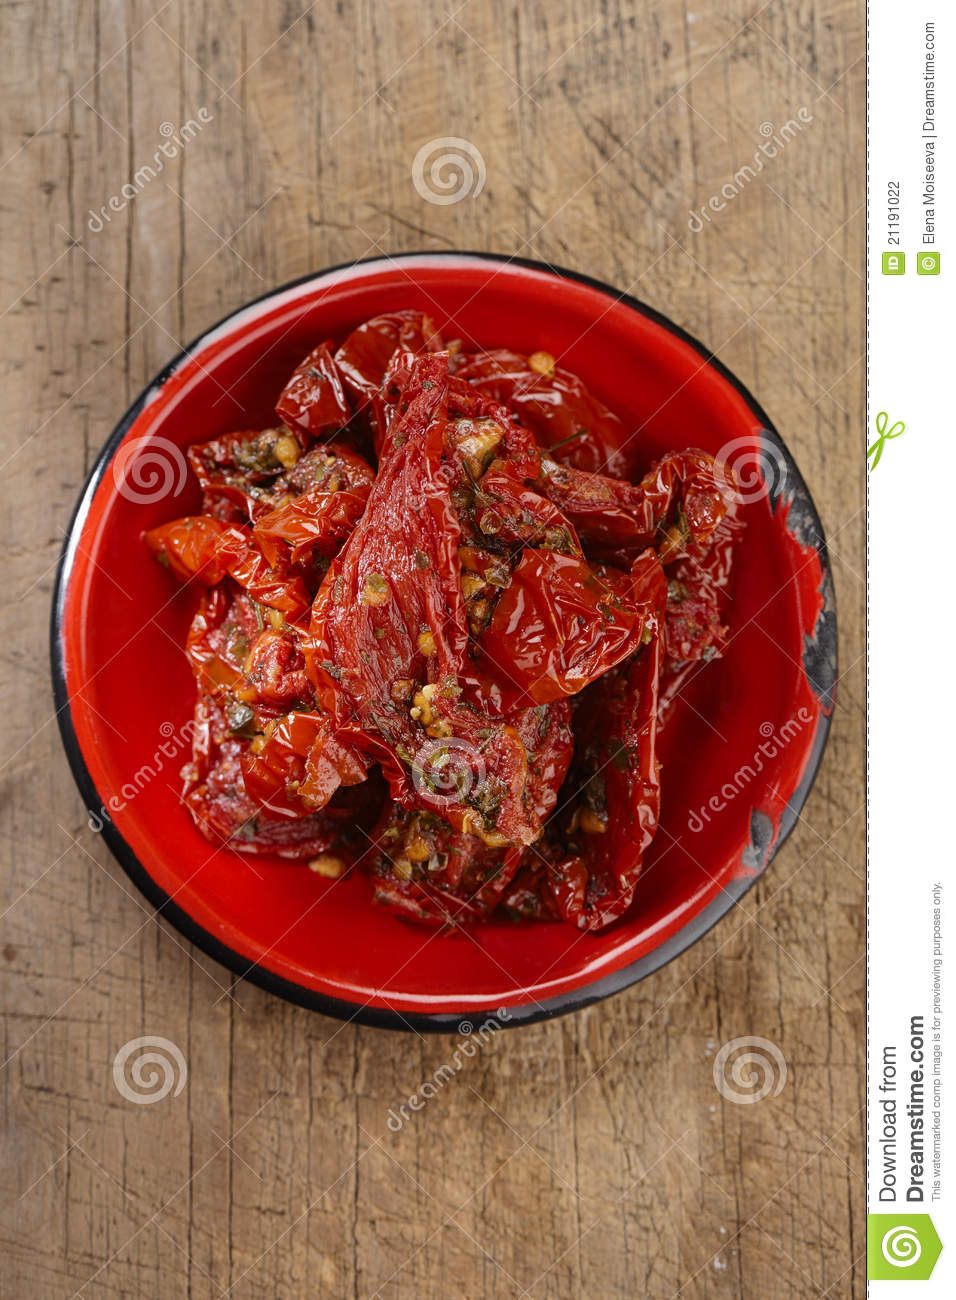 Sun-dried tomatoes with olive oil in red enamel